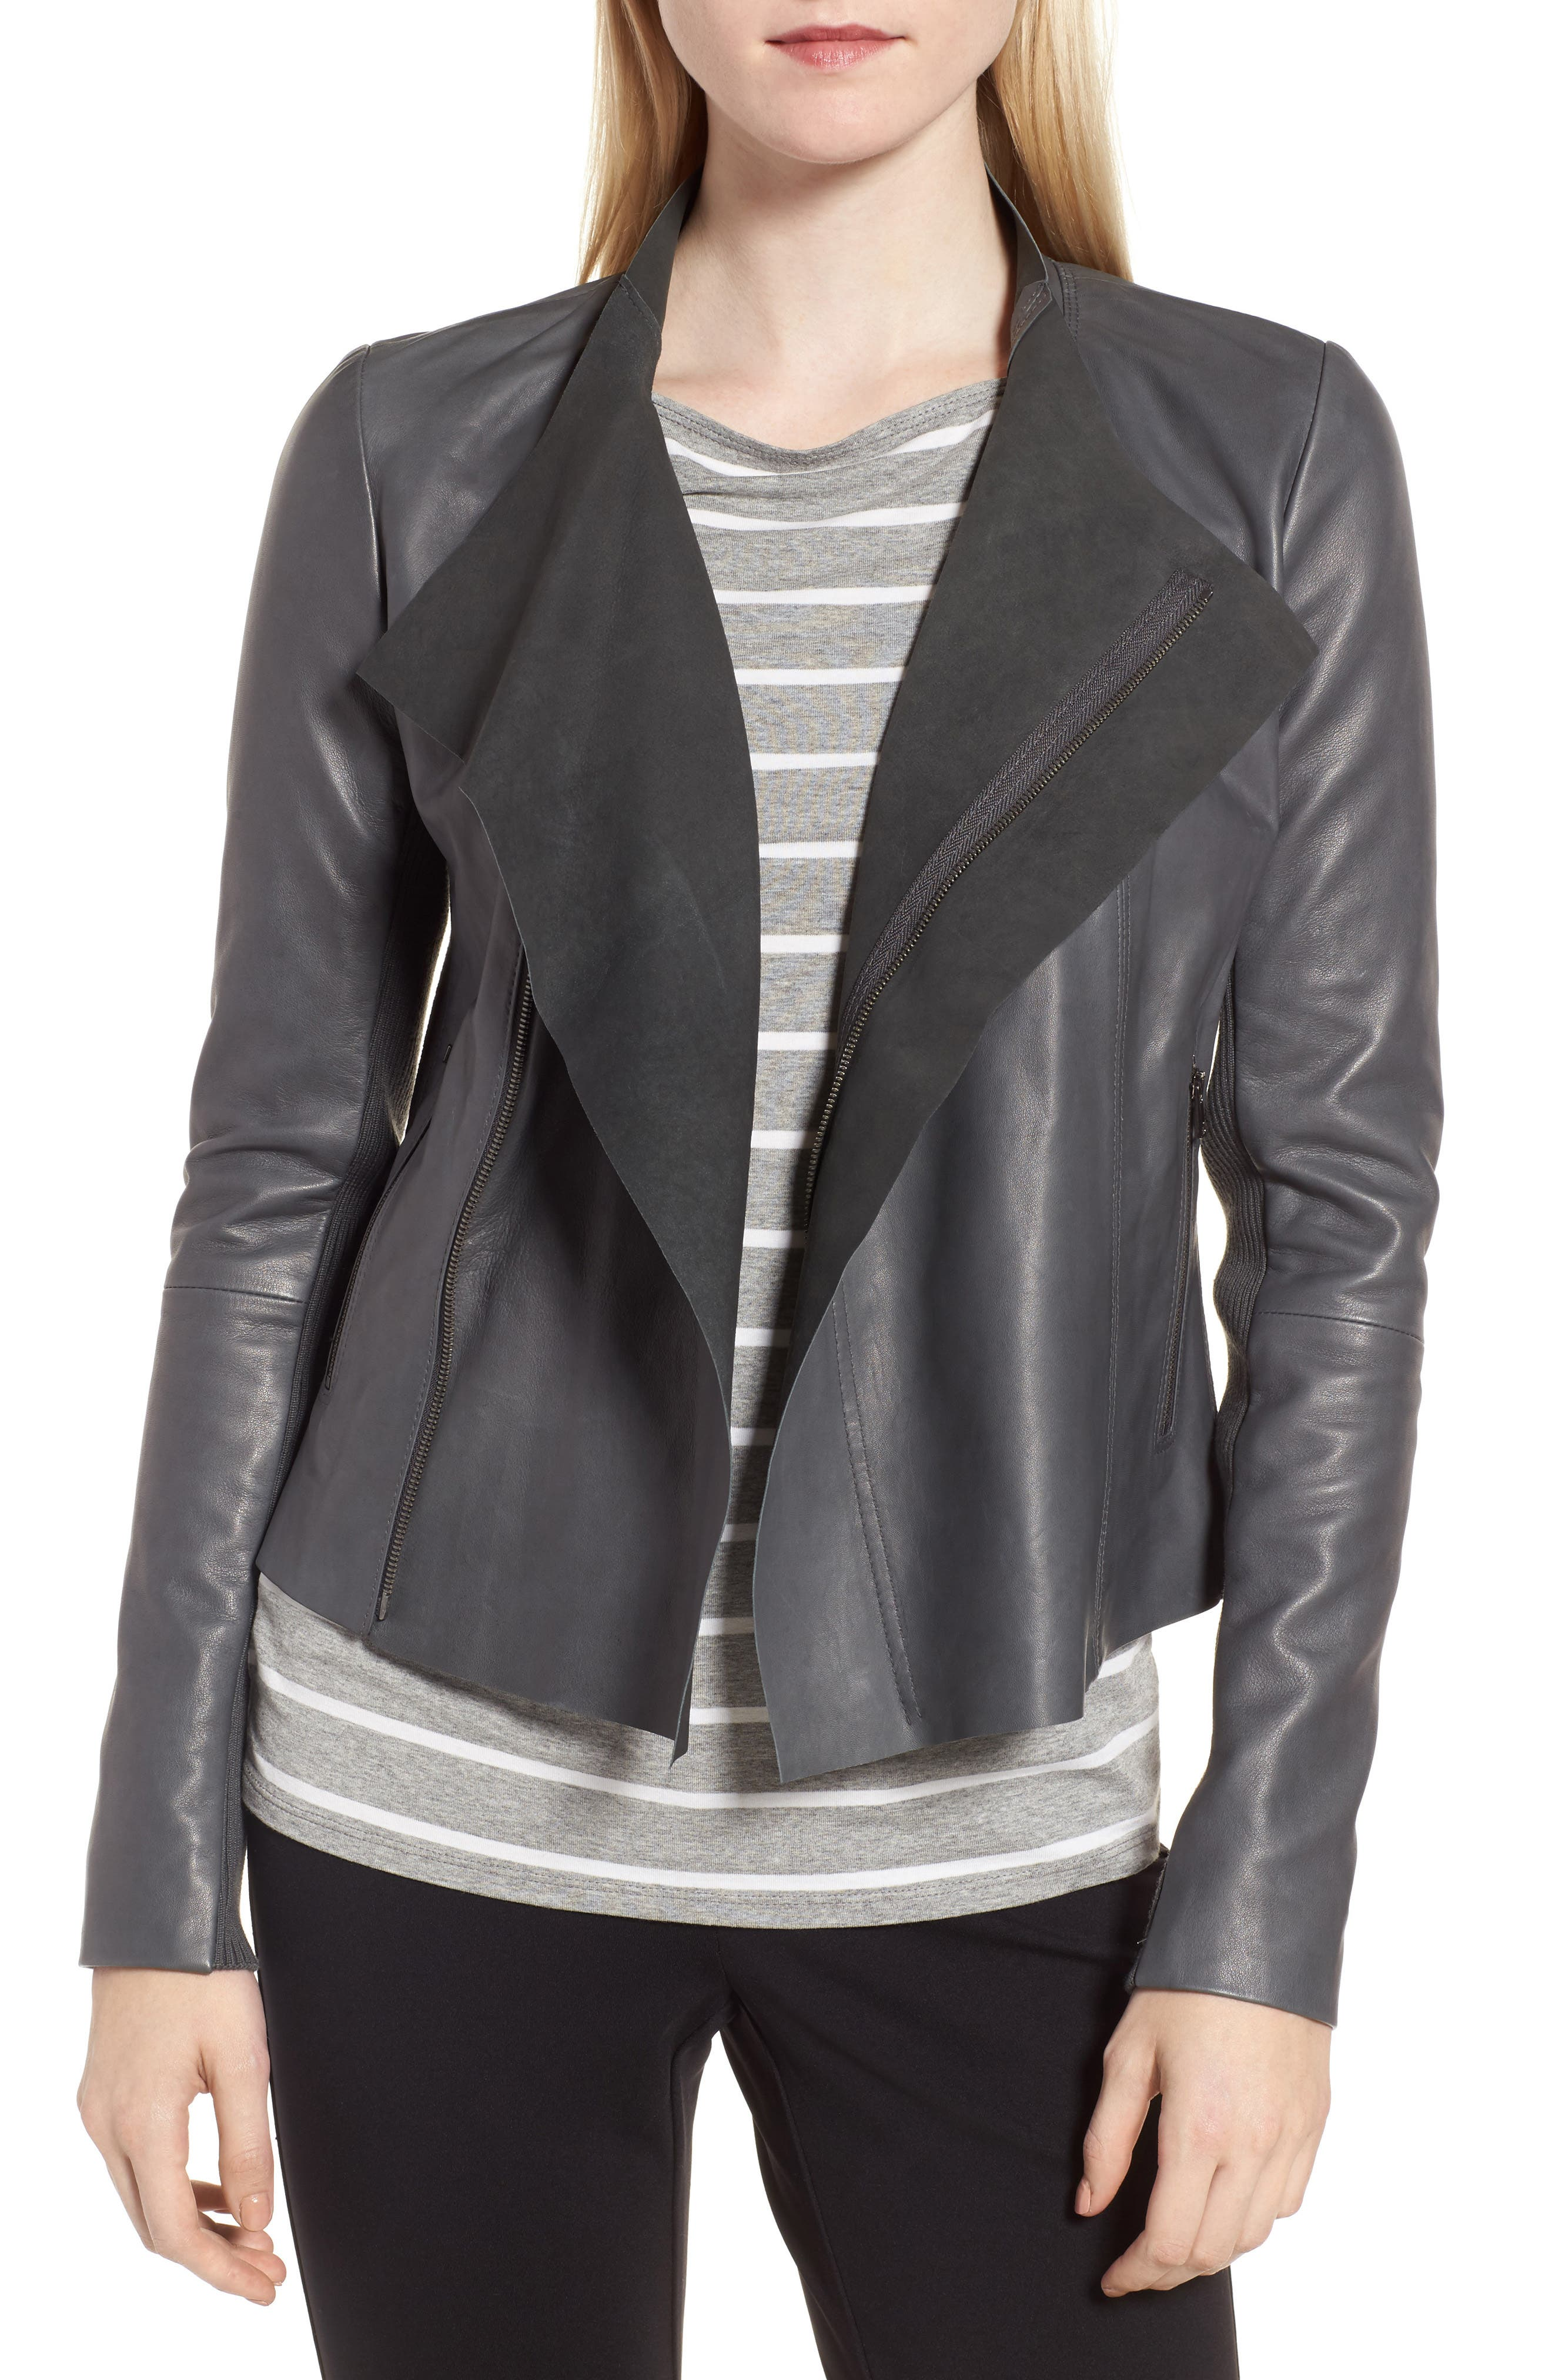 Cascade Front Leather Jacket,                         Main,                         color, Grey Magnet